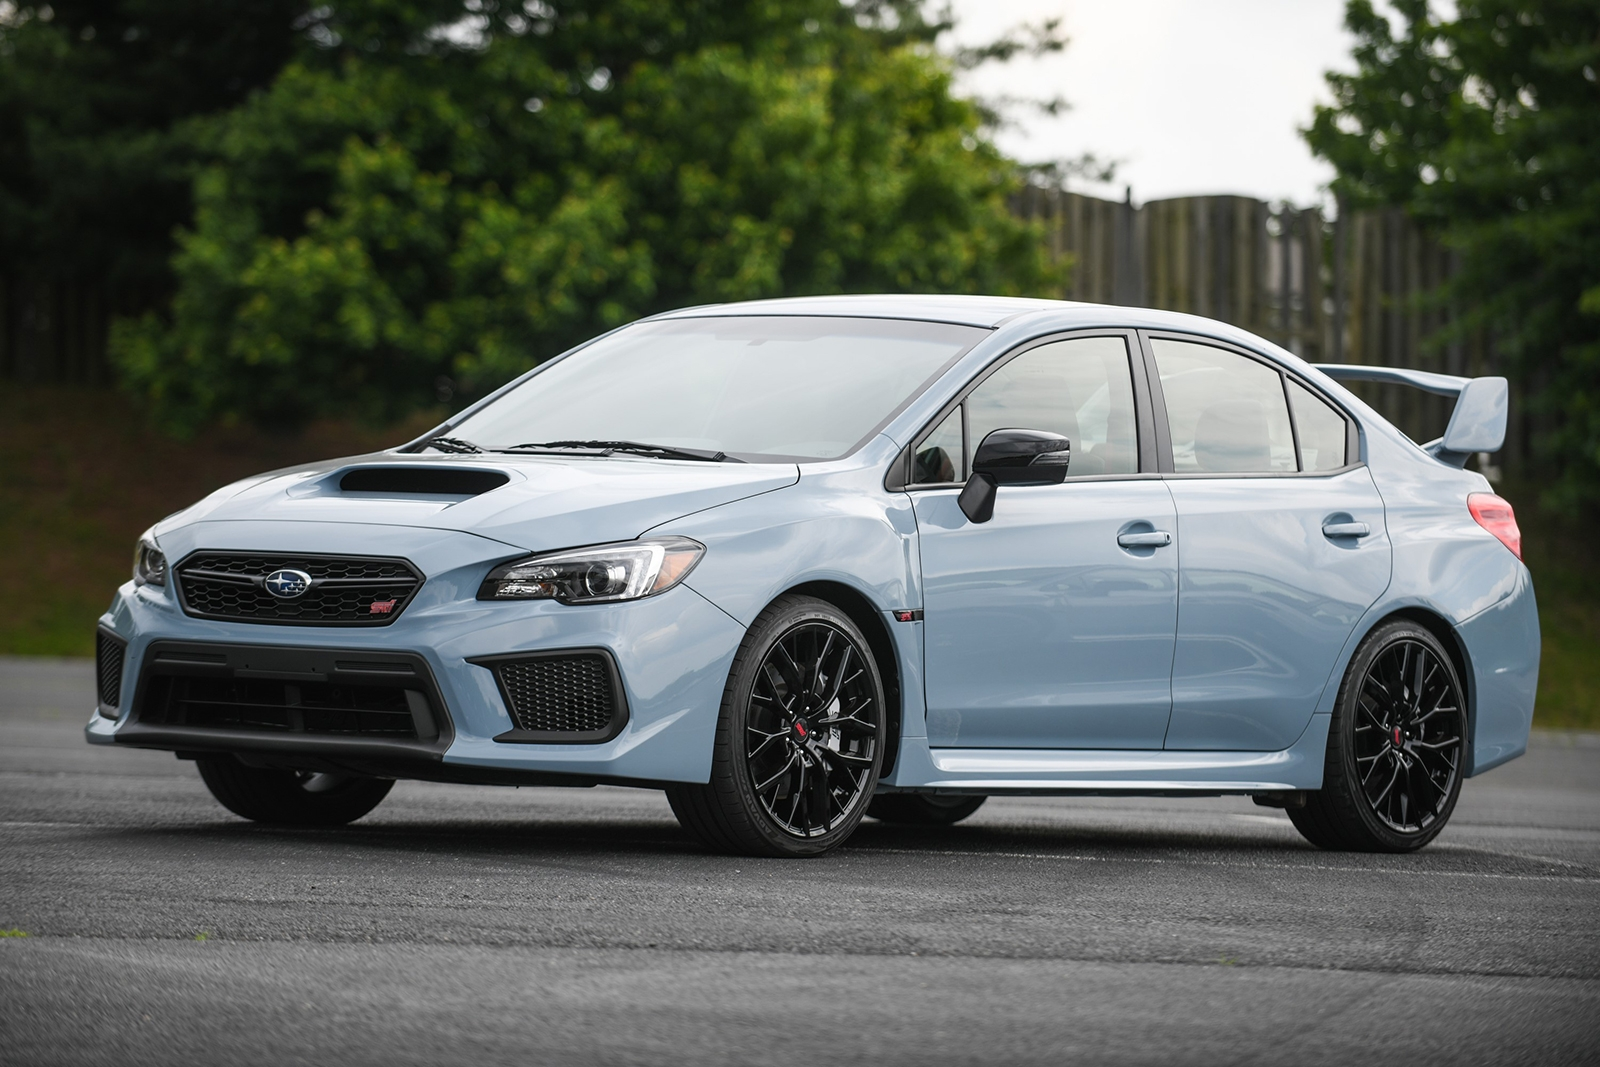 subaru-wrx-and-wrx-sti-series-gray-04